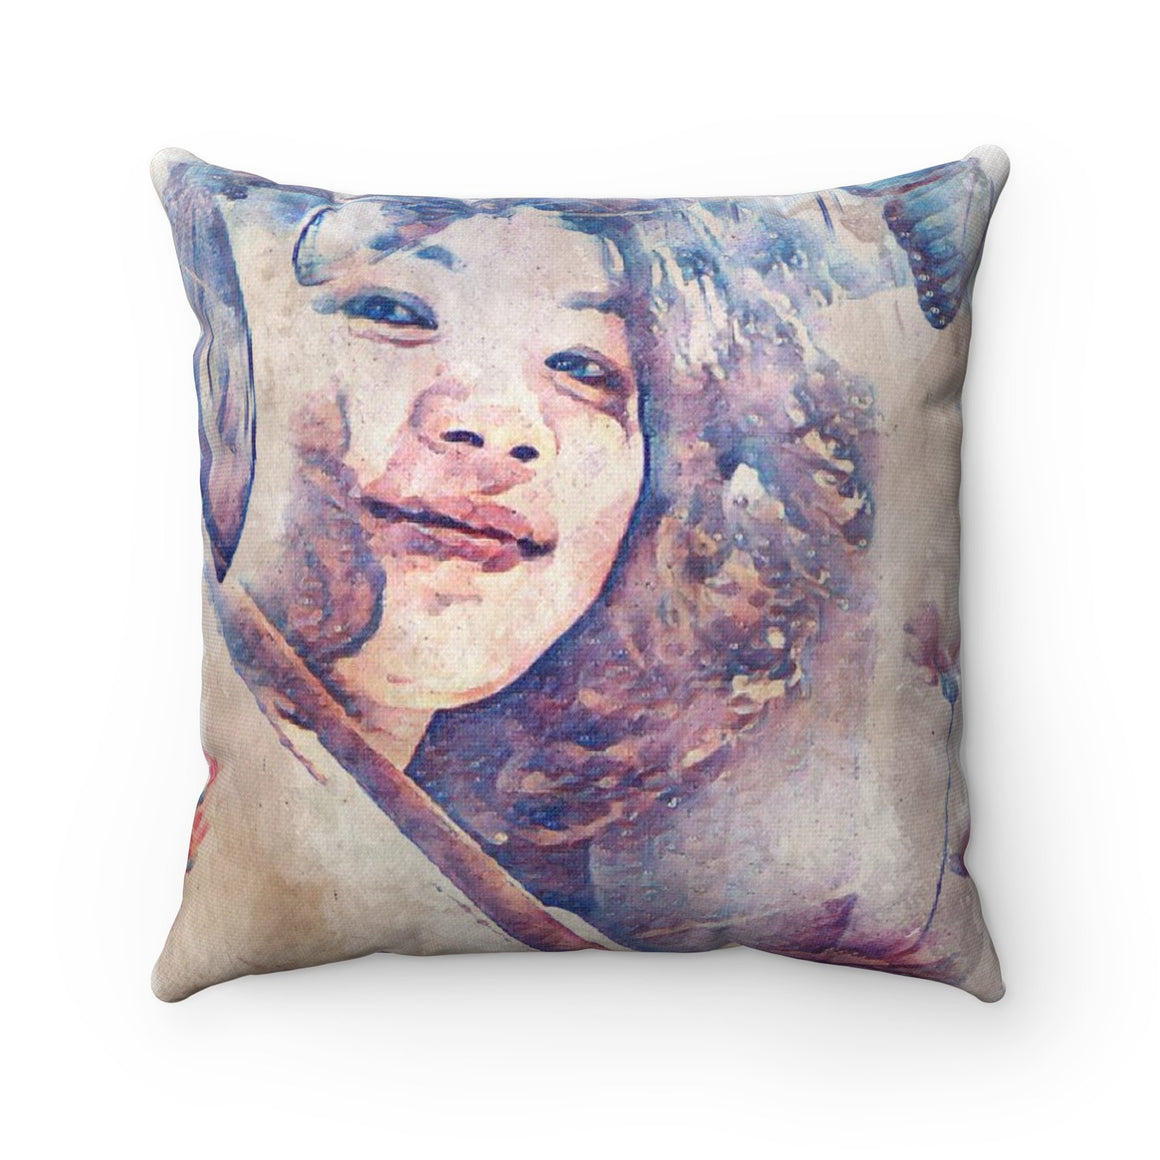 Levi Thang Vintage Face Design V Spun Polyester Square Pillow Case